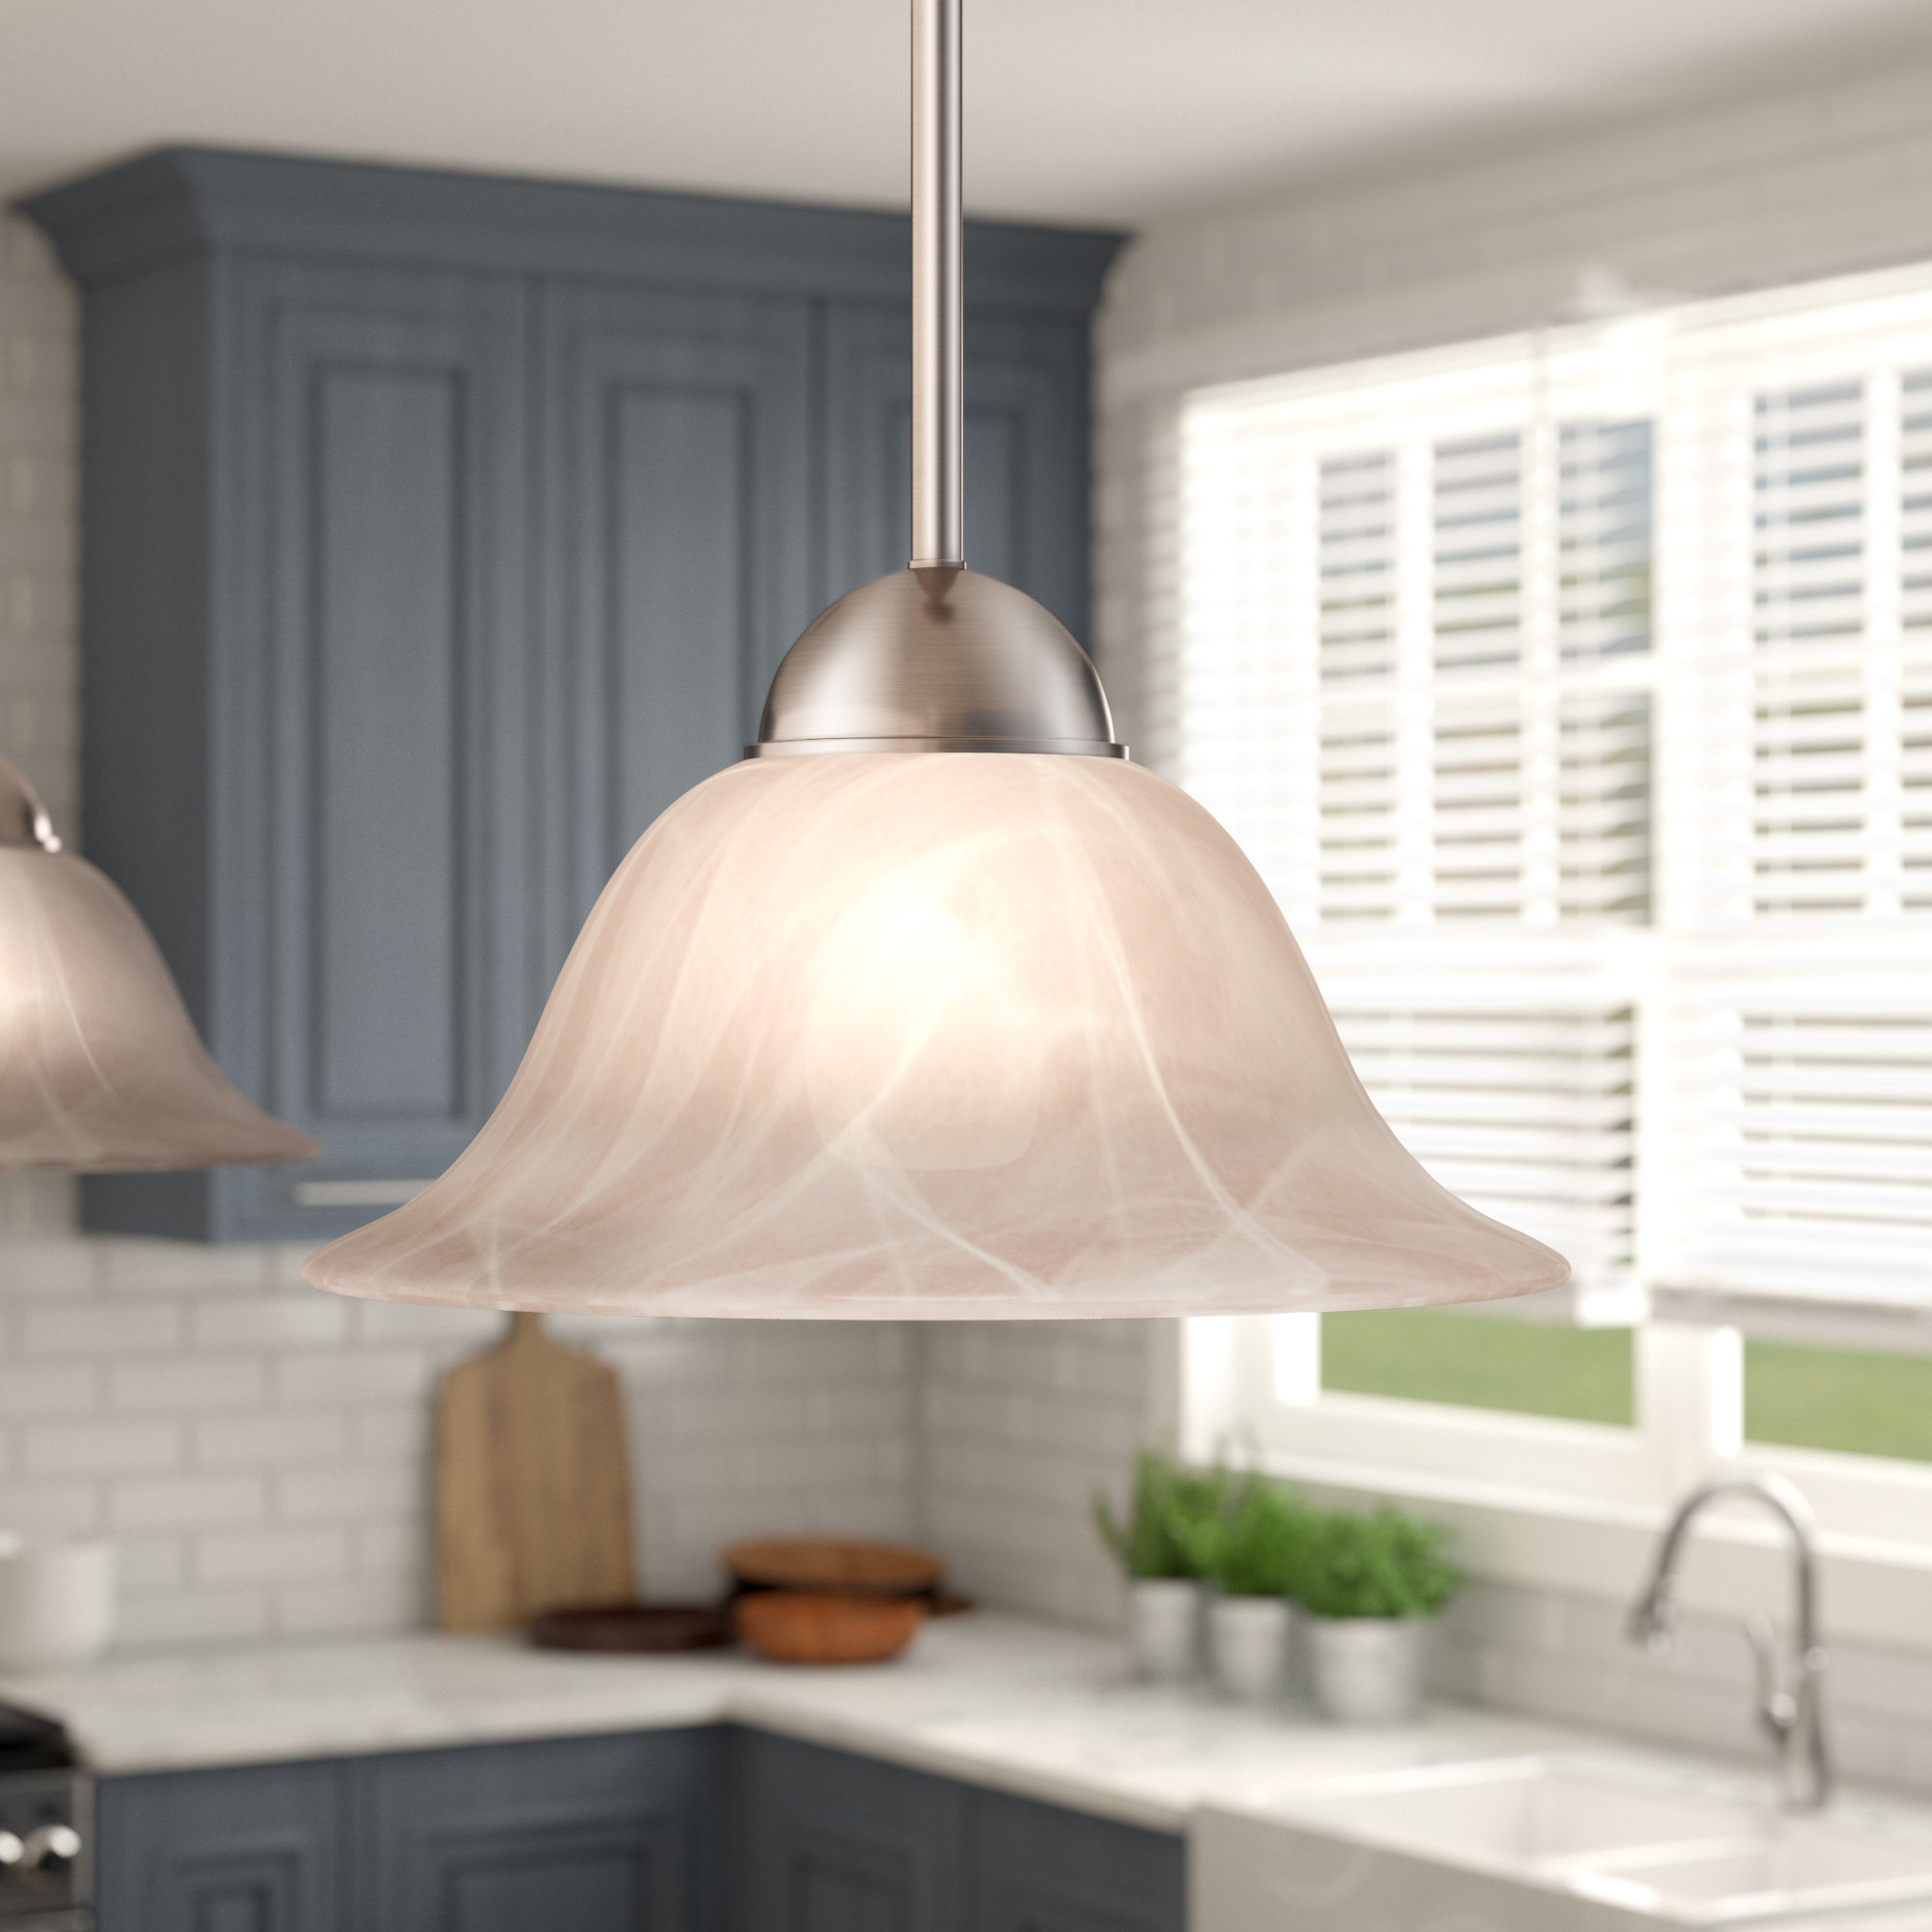 Van Nest 1 Light Single Bell Pendant Throughout Trendy Van Horne 3 Light Single Teardrop Pendants (View 14 of 25)